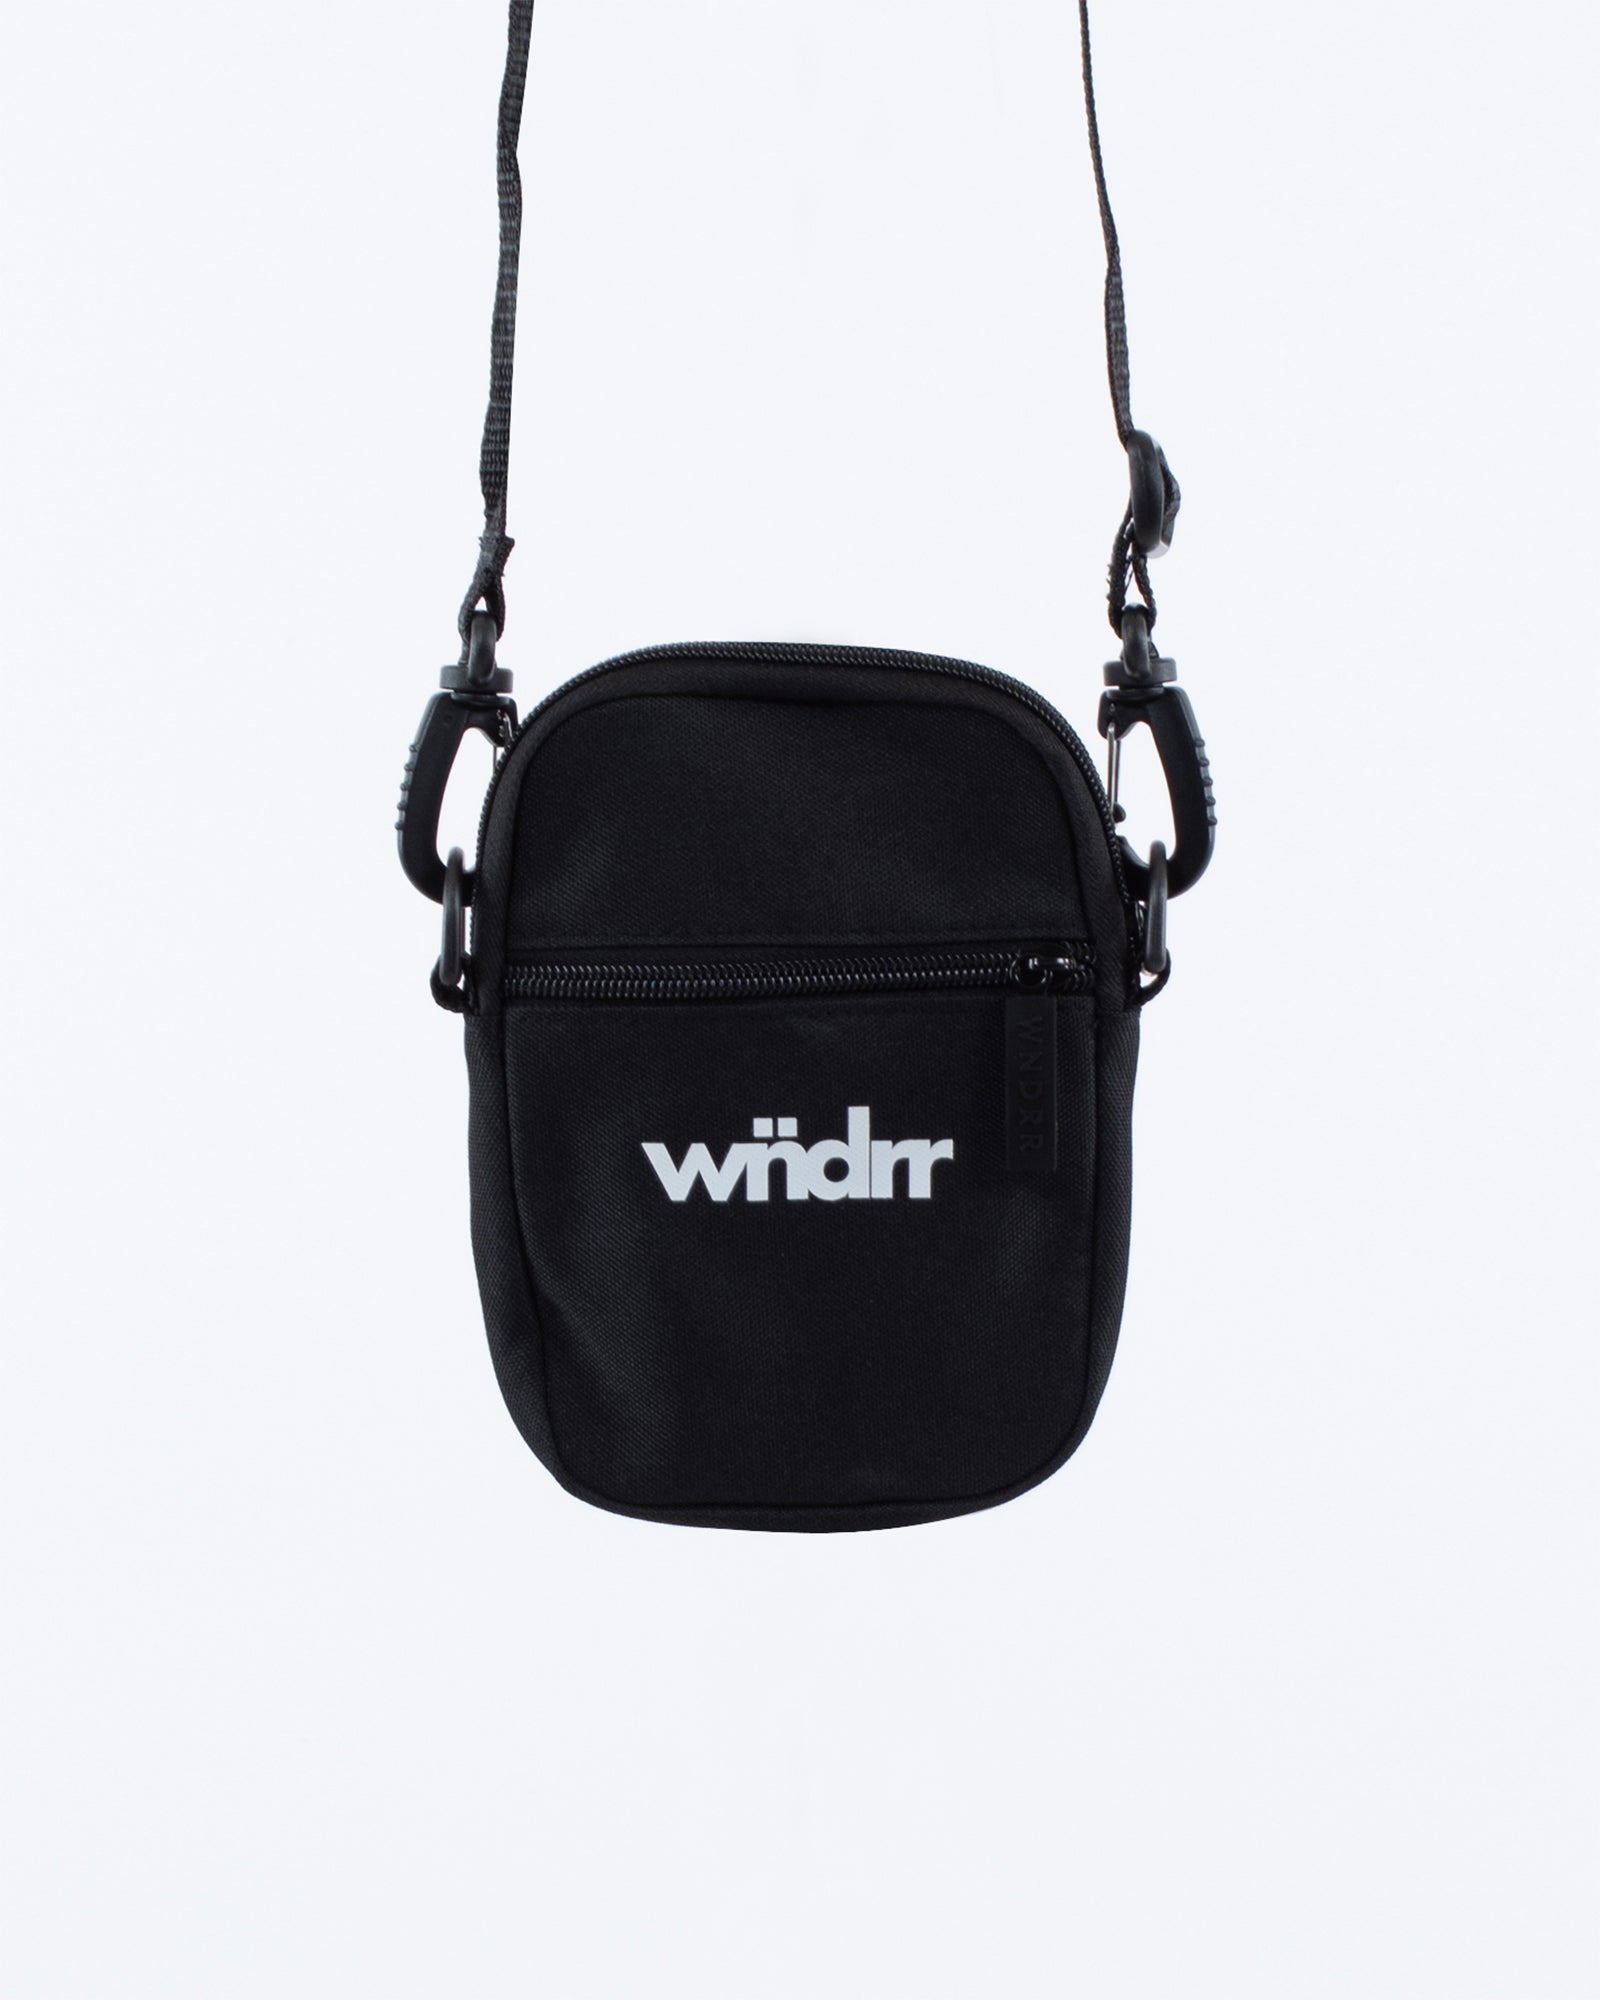 Wndrr Accent Pocket Bag - Black